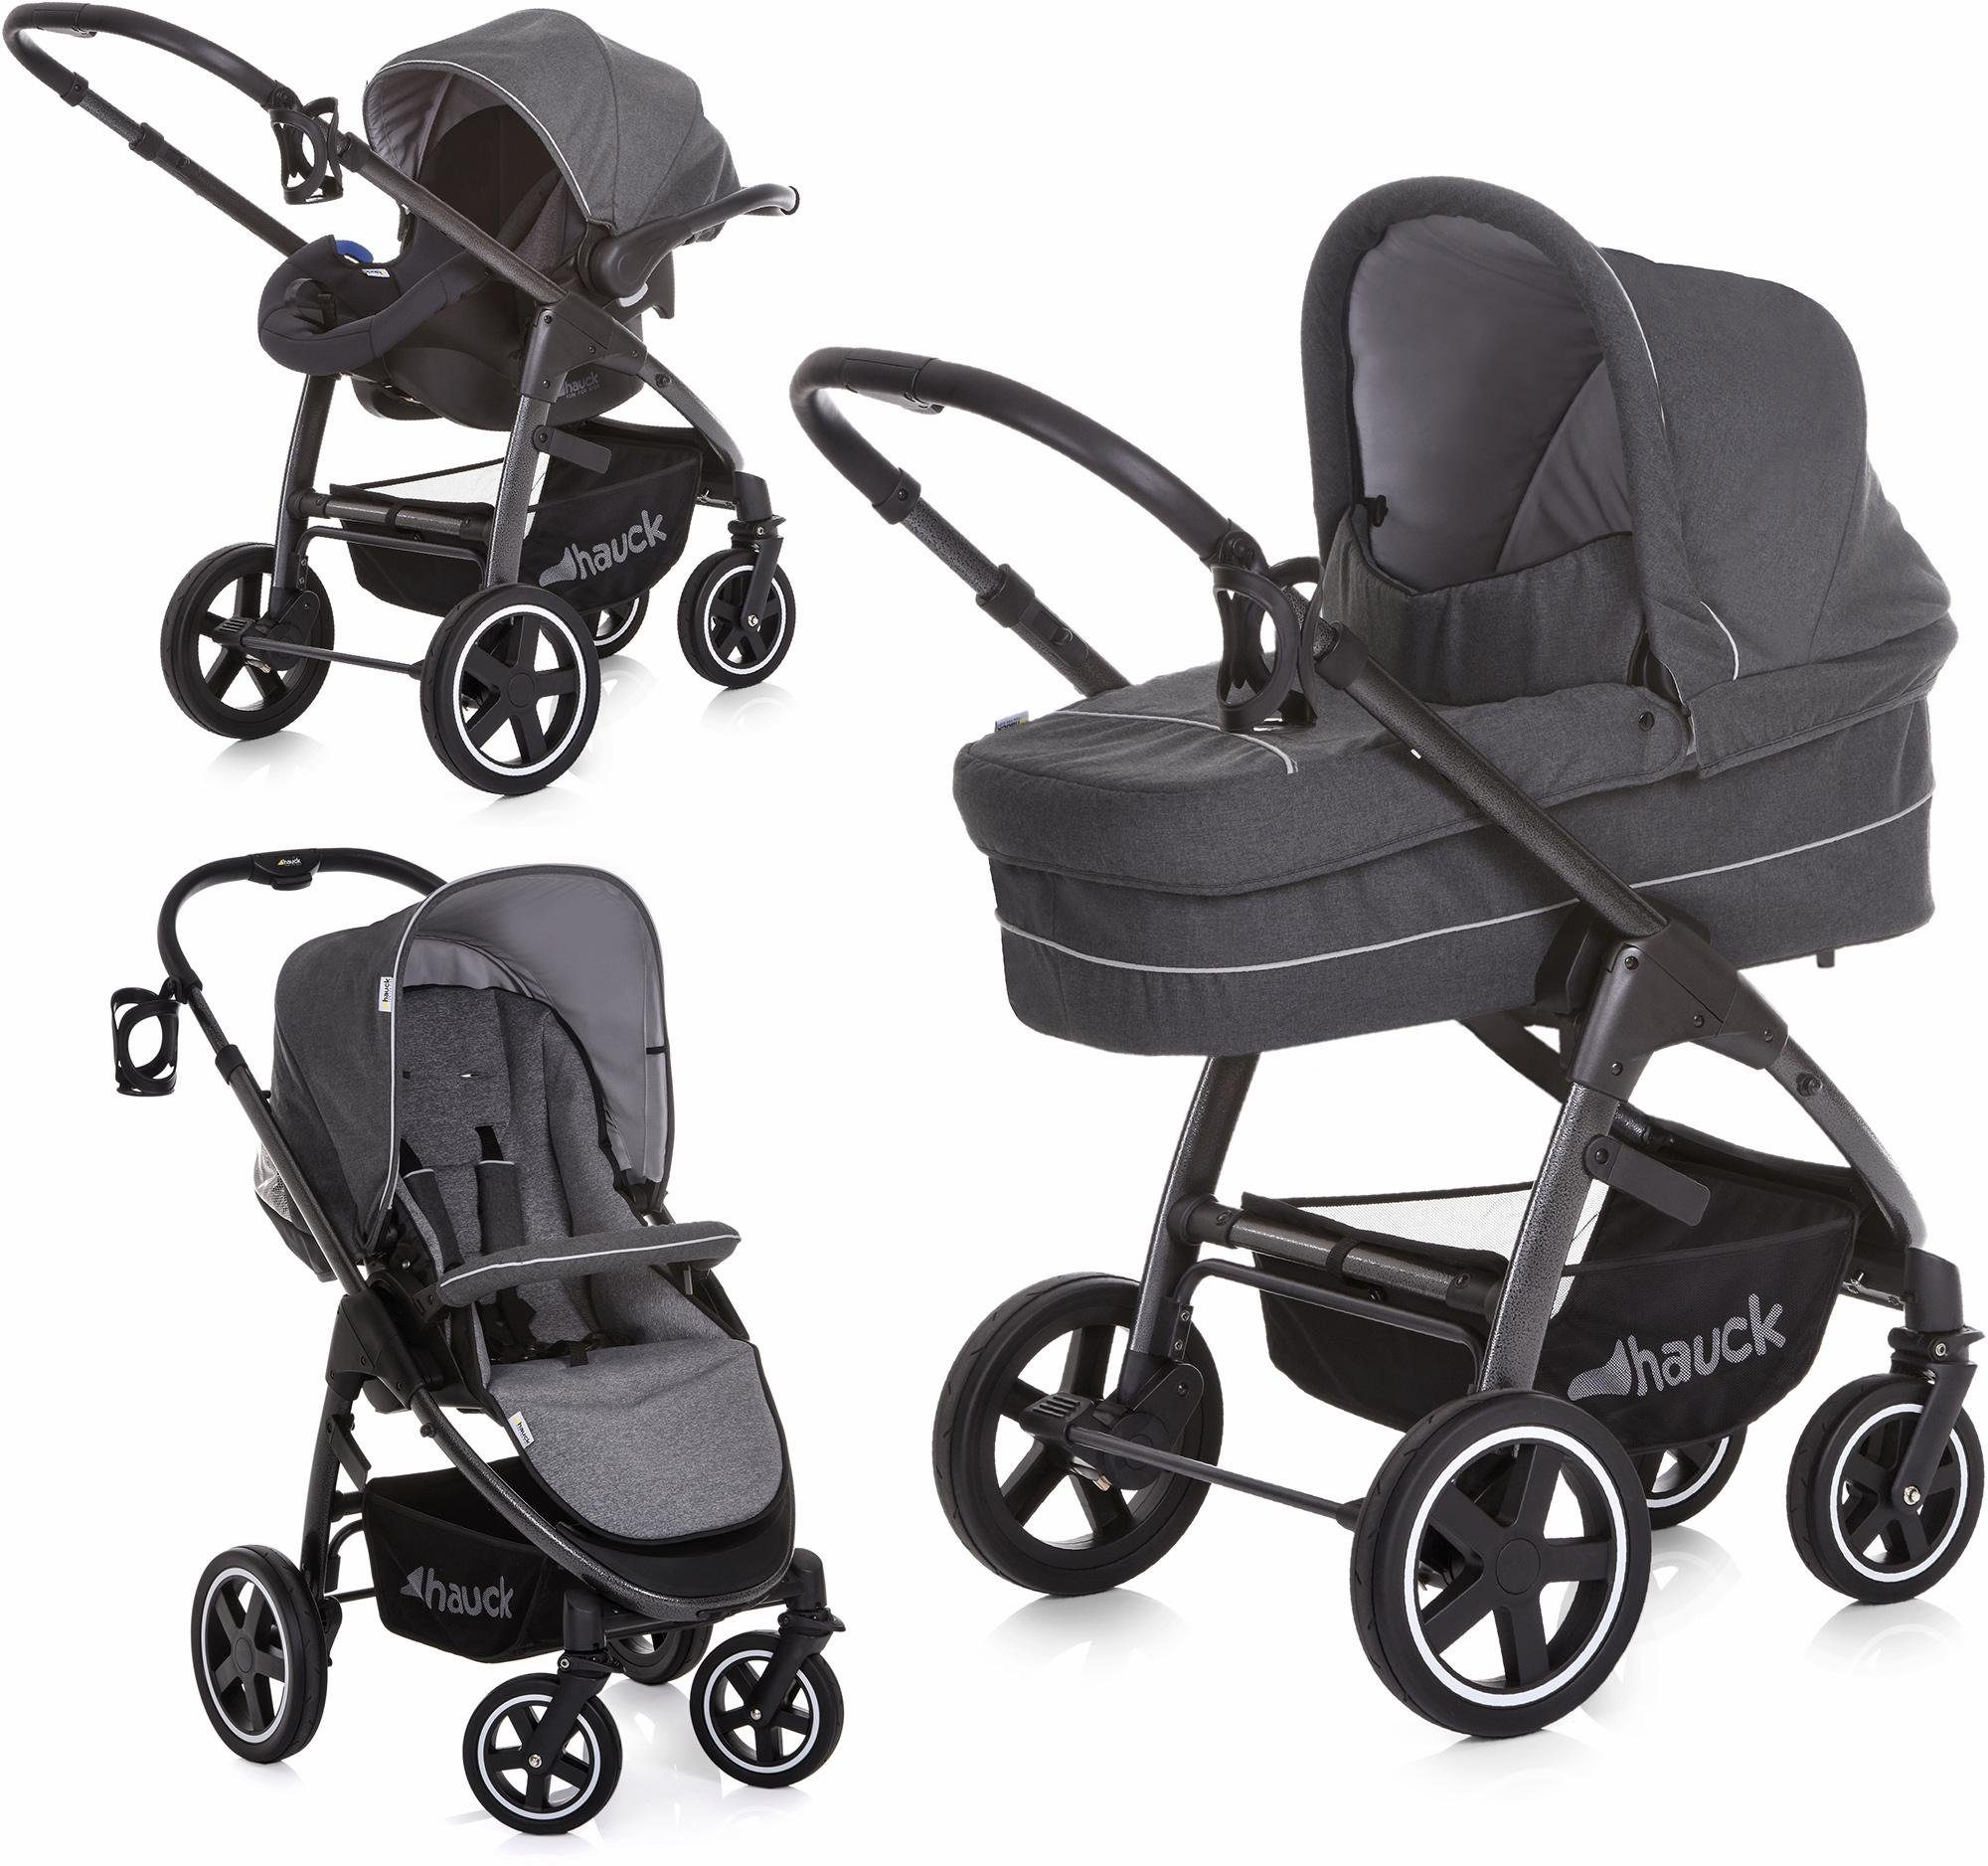 hauck FUN FOR KIDS Kombi-Kinderwagen inkl. Babyschale, »Soul Plus Trio Set Beluga«